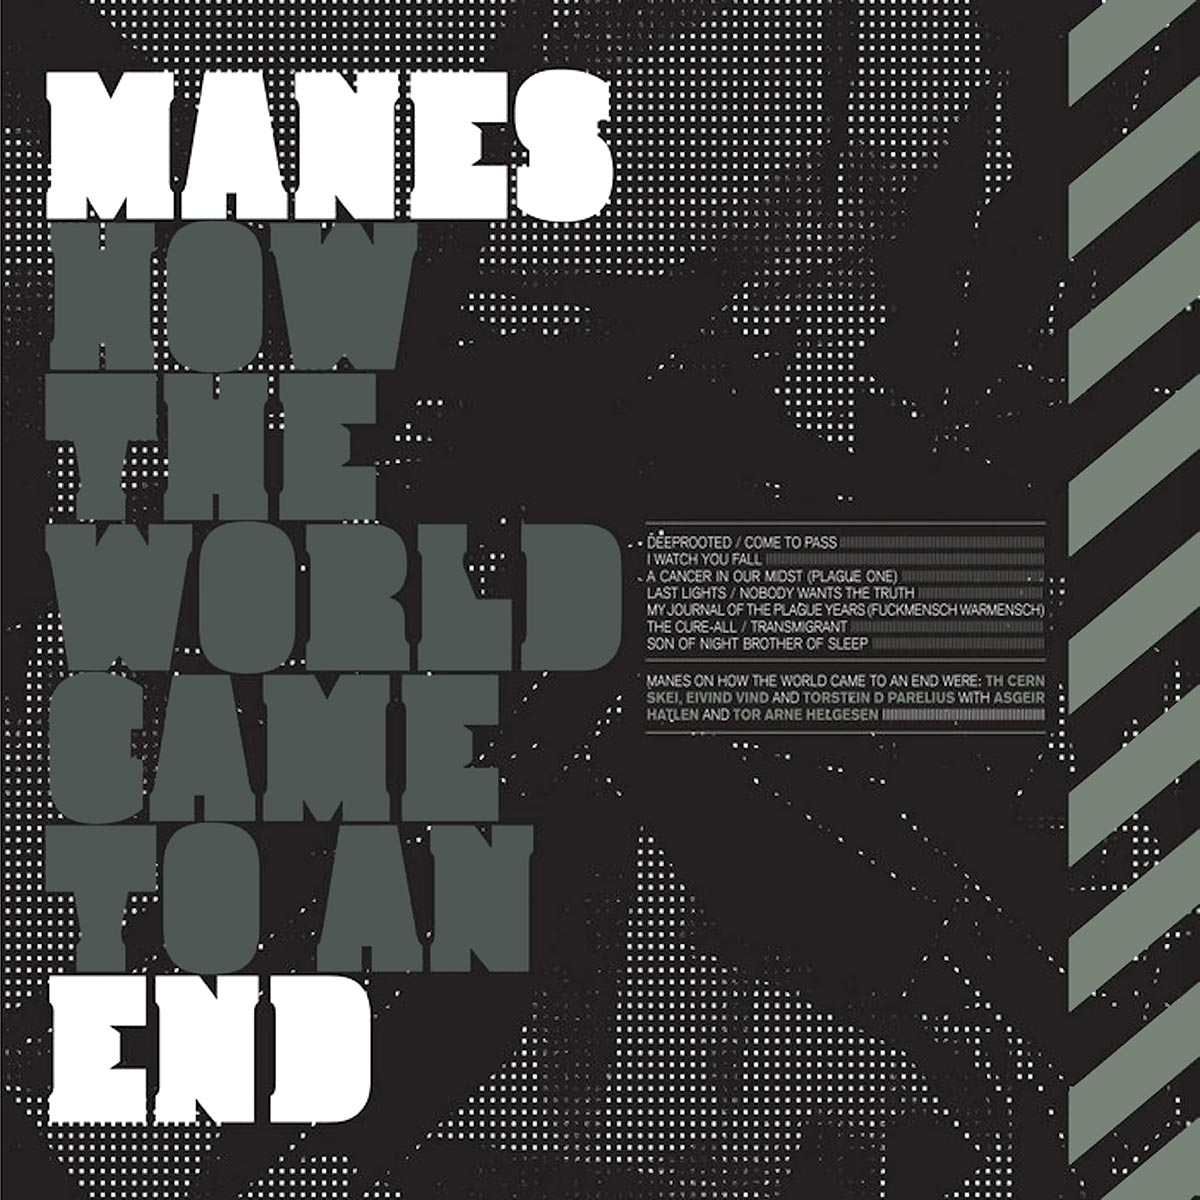 Manes - How The World Came To An End (album cover)